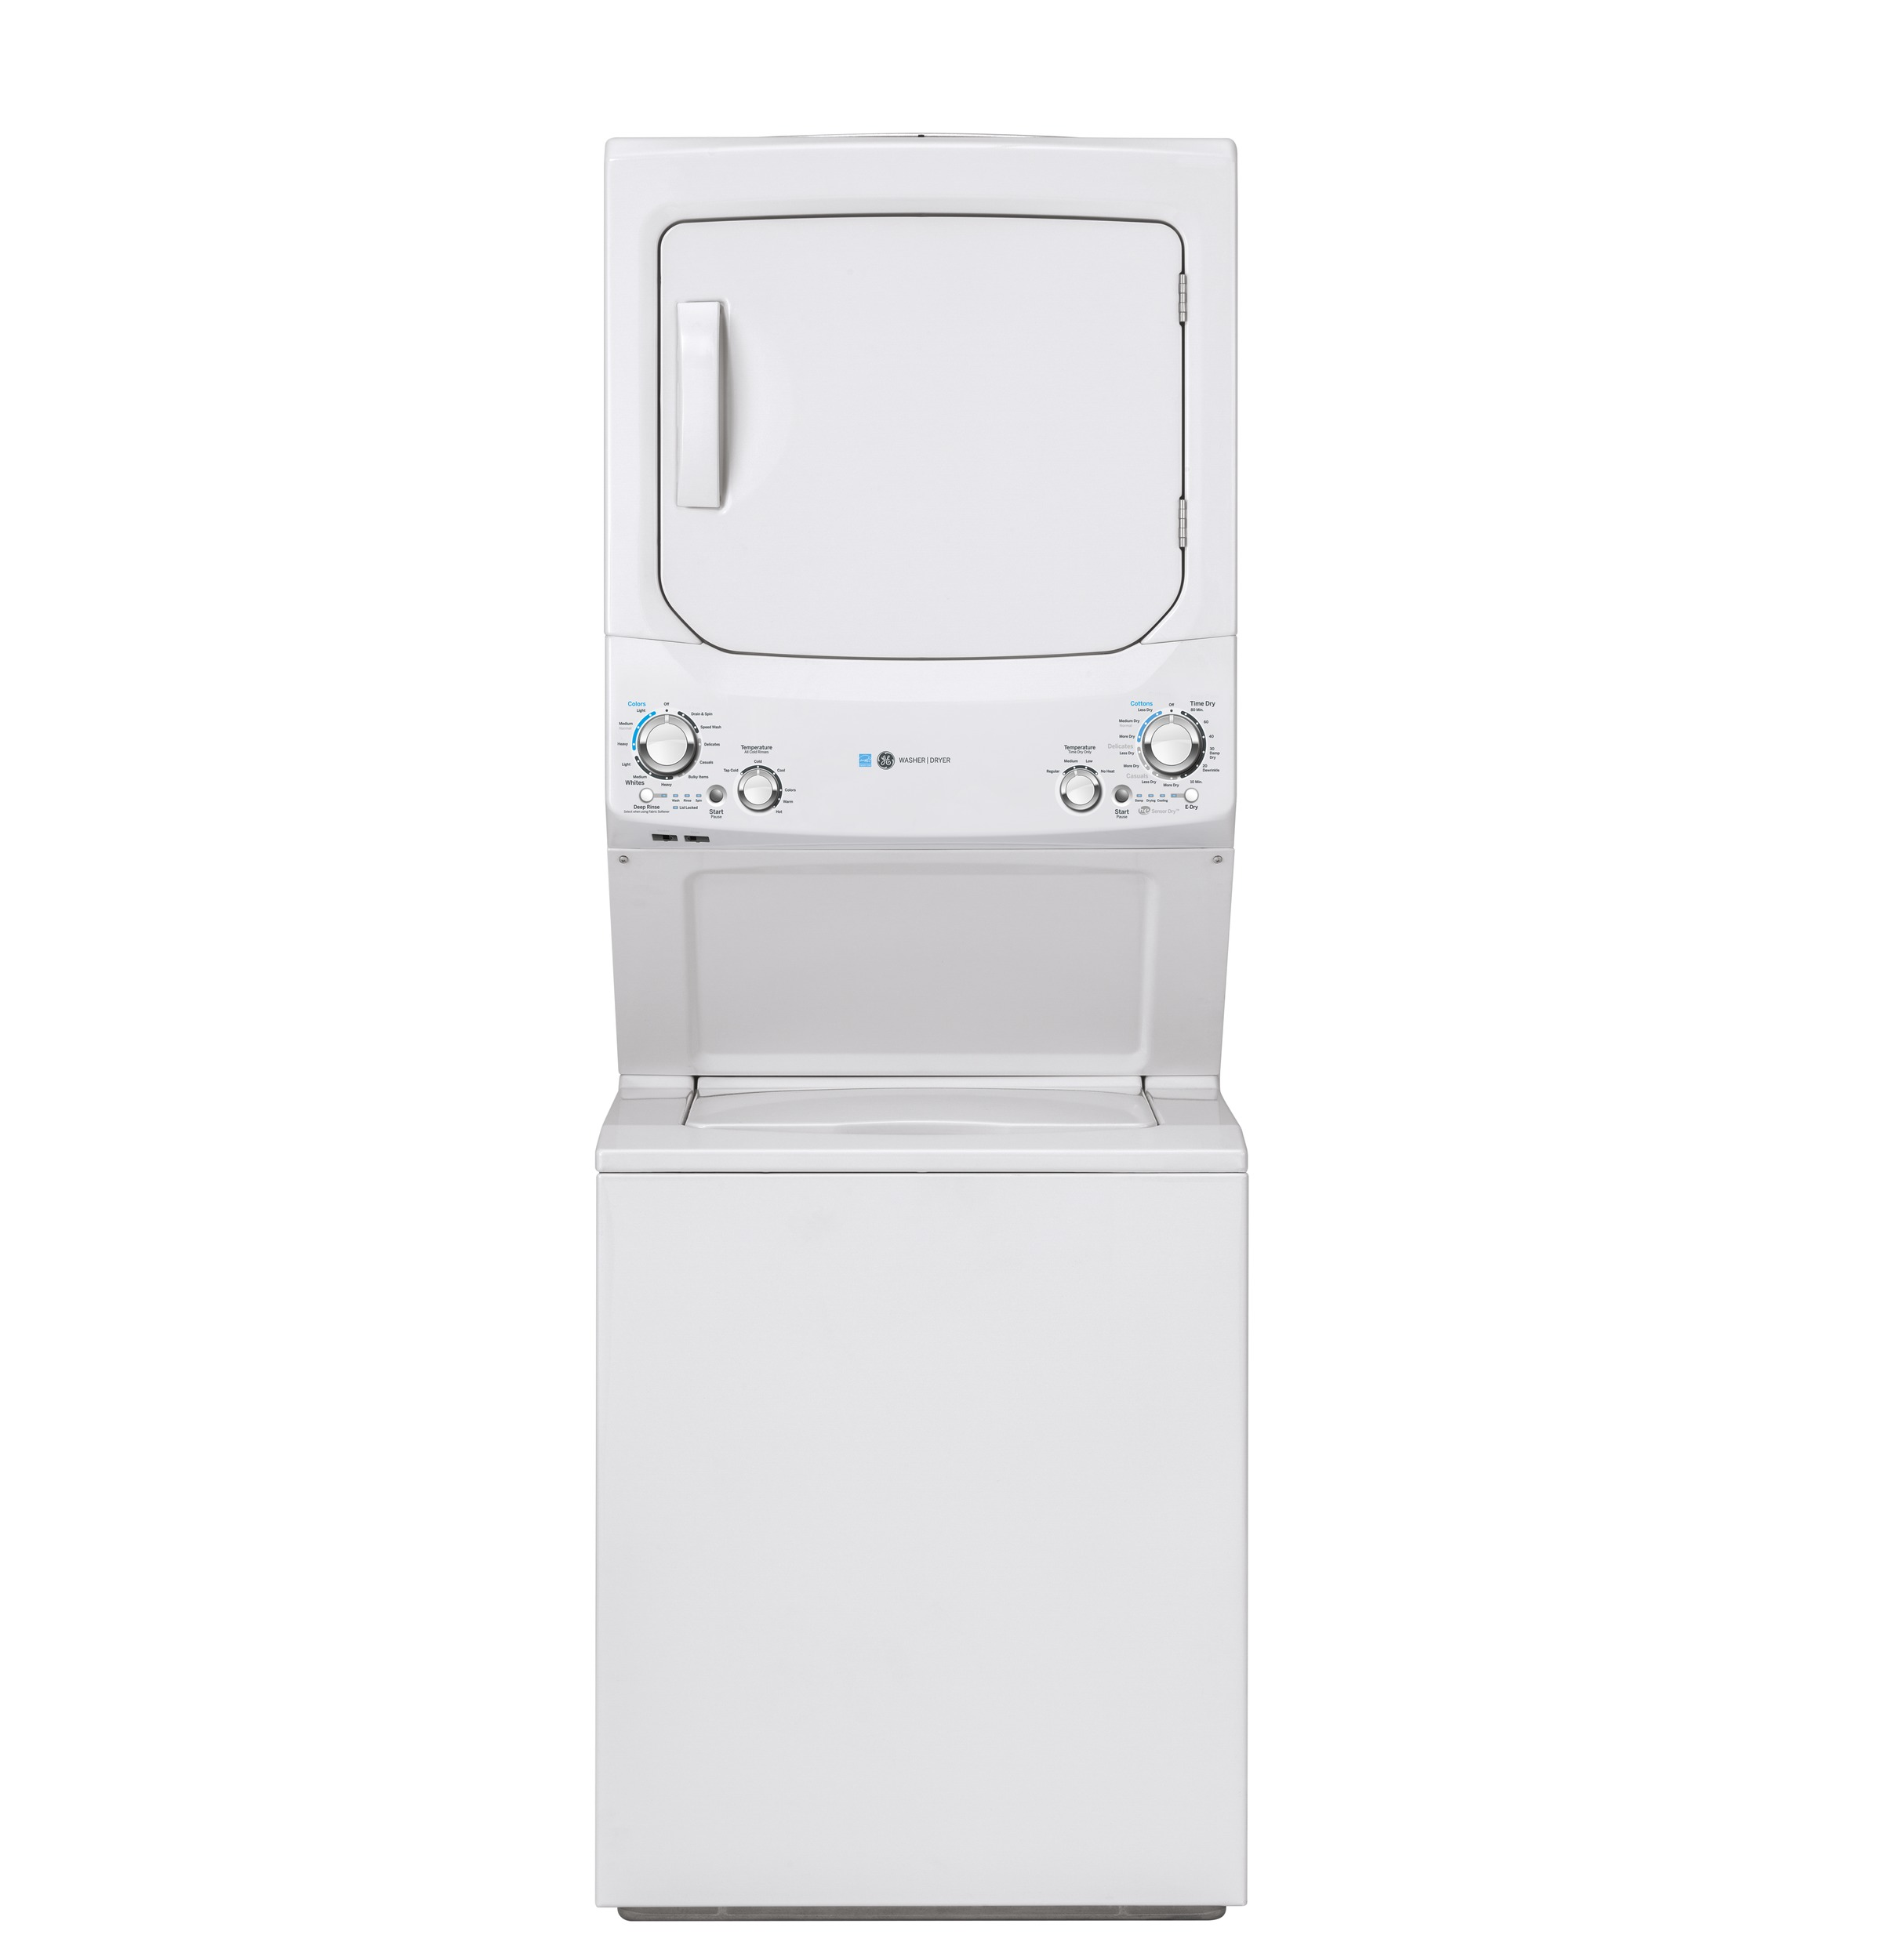 GE GE Unitized Spacemaker® 3.9 cu. ft. Capacity Washer with Stainless Steel Basket and 5.9 cu. ft. Capacity Gas Dryer